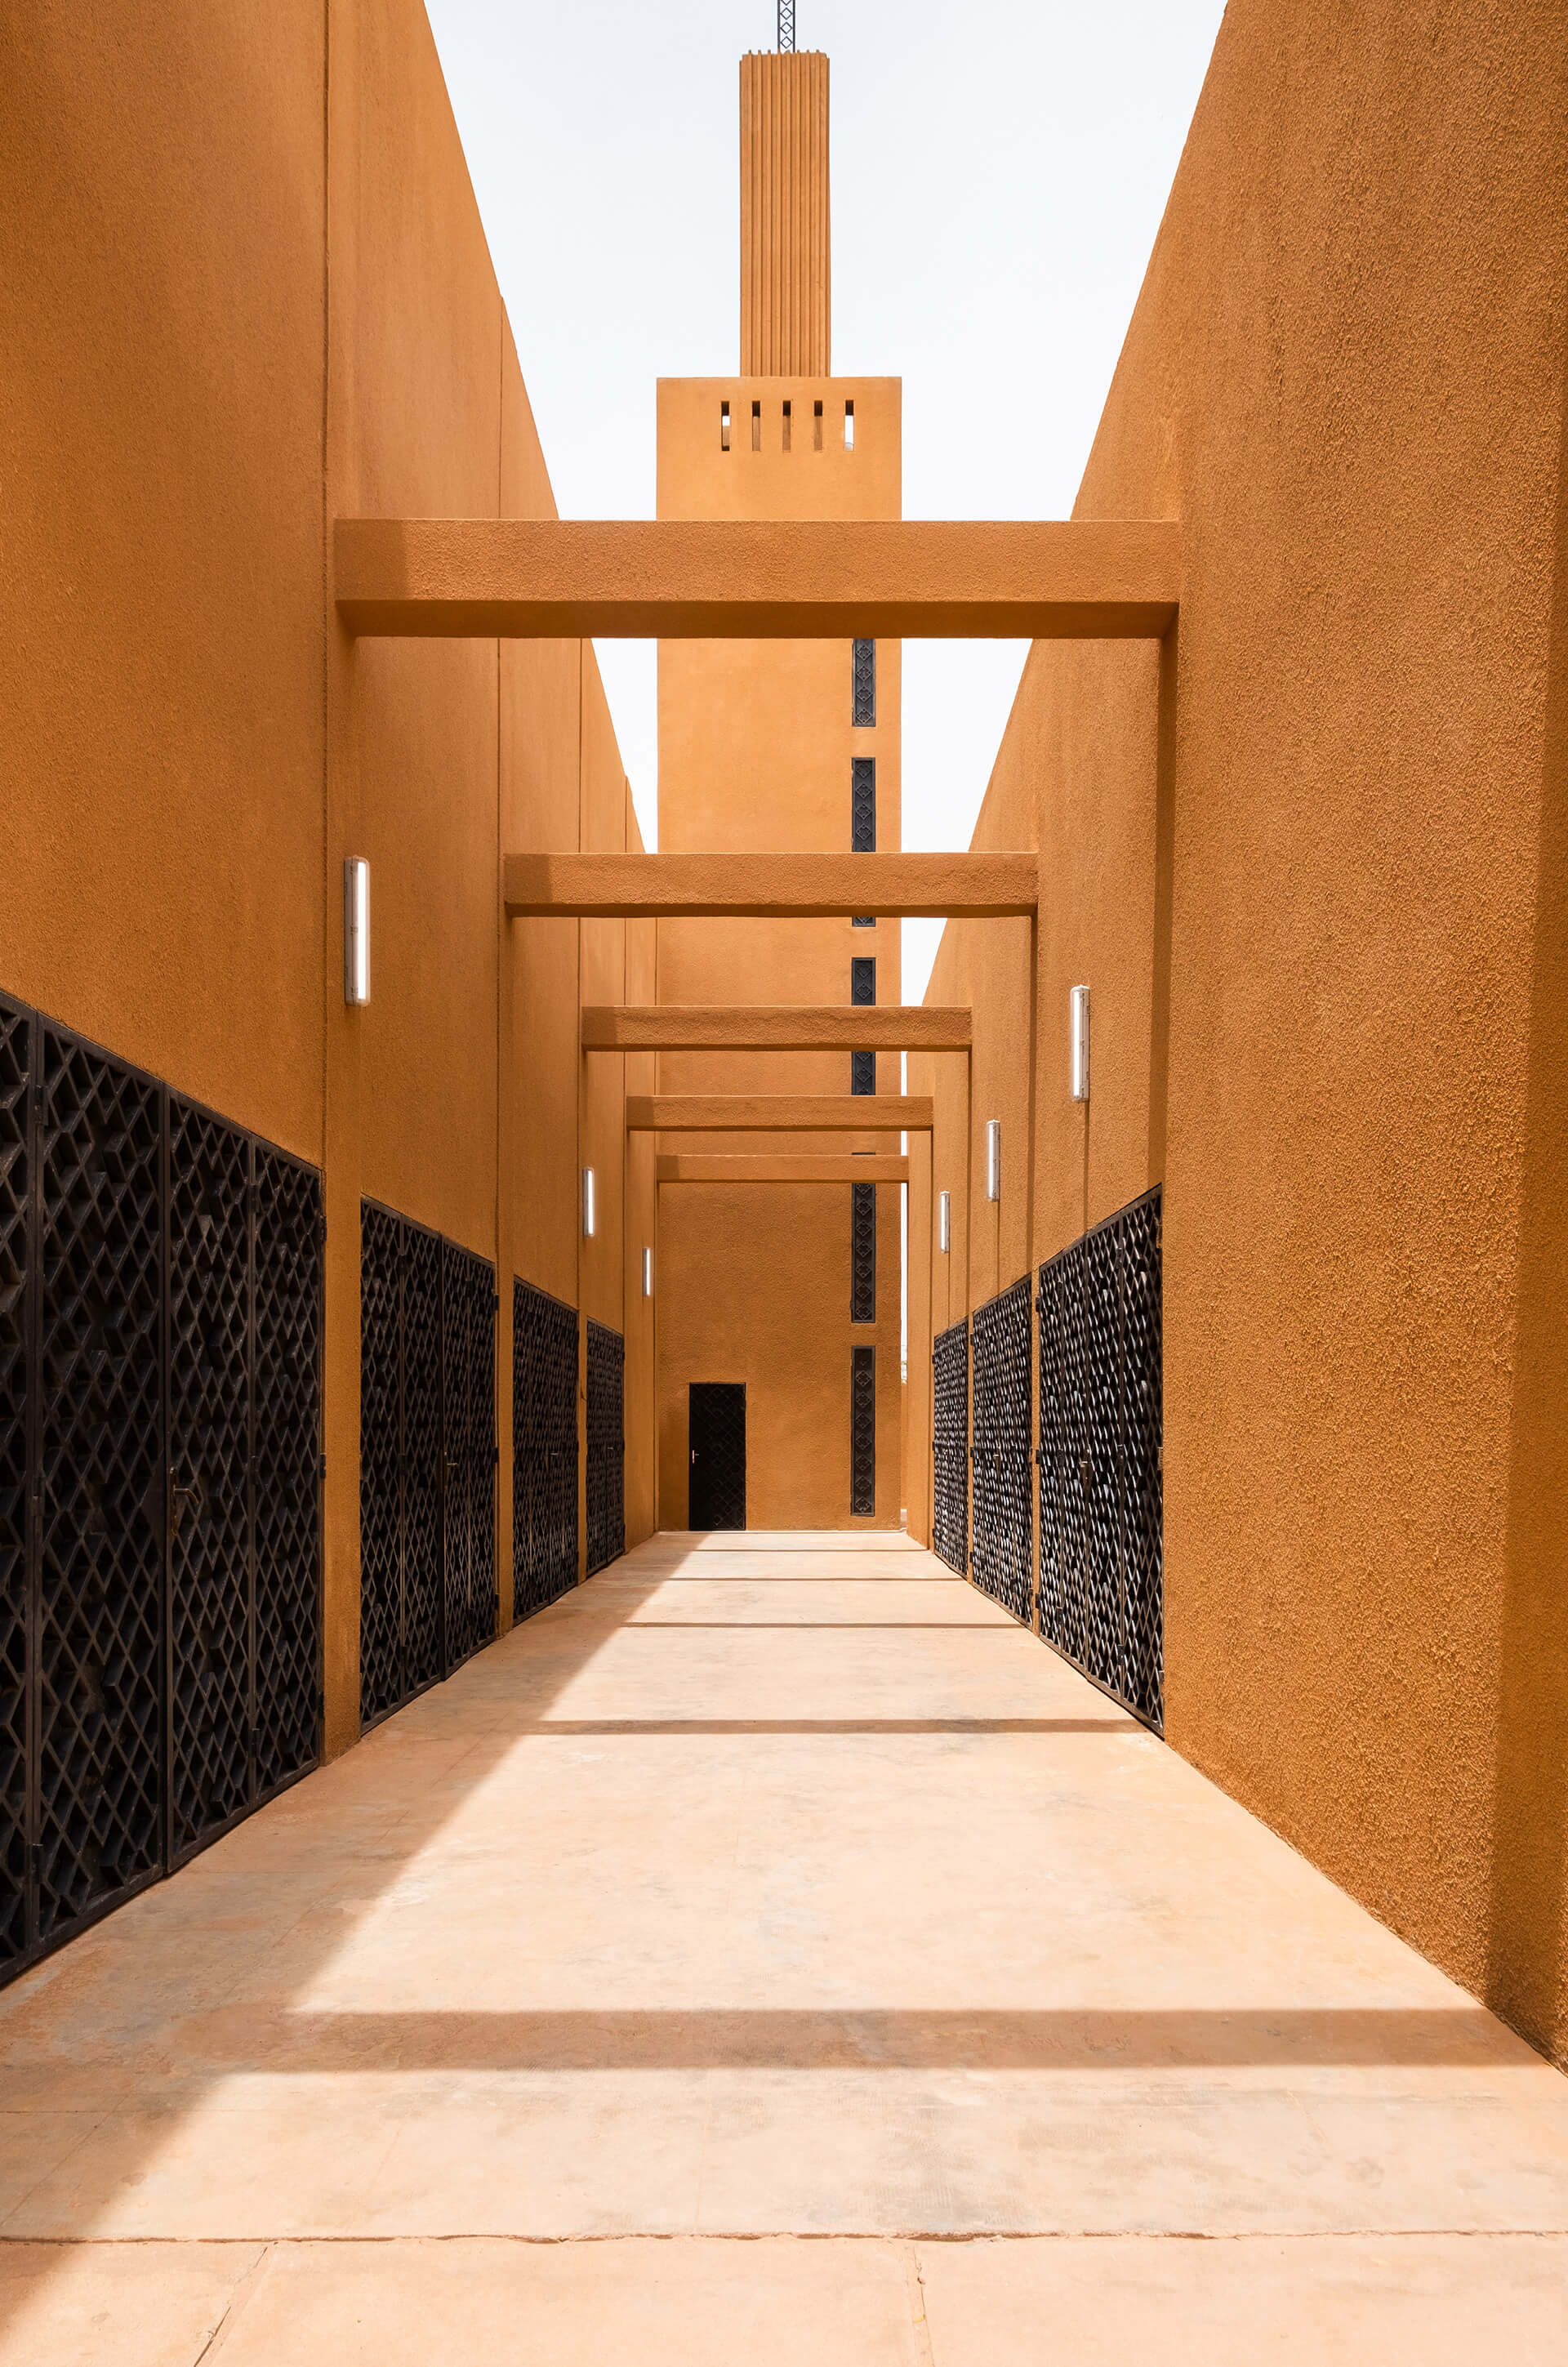 To renovate the old building to its previous glory, the original masons were invited to join the project's team for Hikma, a religious and secular complex in Niger | Yasaman Esmaili | Studio Chahar | STIRworld